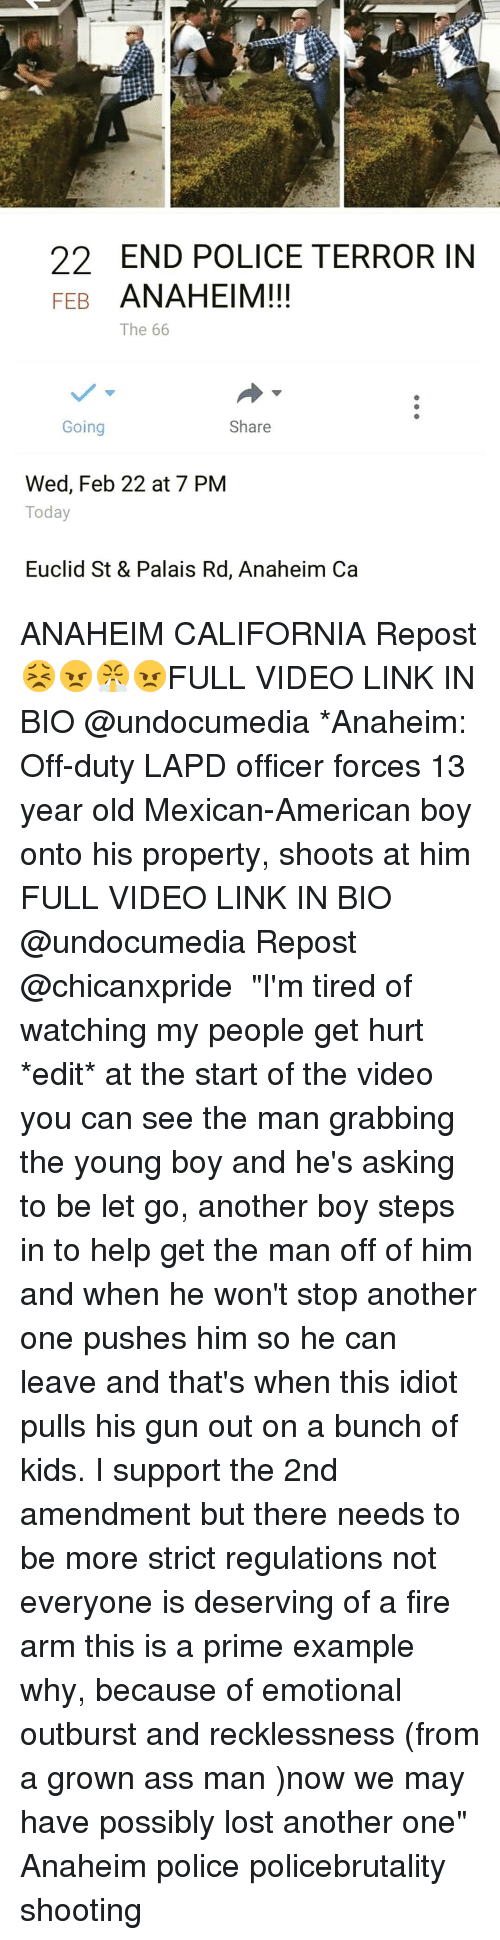 """anaheim ca: END POLICE TERROR IN  FEB  ANAHEIM!!!  The 66  Going  Share  Wed, Feb 22 at 7 PM  Today  Euclid St & Palais Rd, Anaheim Ca ANAHEIM CALIFORNIA Repost 😣😠😤😠FULL VIDEO LINK IN BIO @undocumedia *Anaheim: Off-duty LAPD officer forces 13 year old Mexican-American boy onto his property, shoots at him FULL VIDEO LINK IN BIO @undocumedia Repost @chicanxpride ・・・ """"I'm tired of watching my people get hurt *edit* at the start of the video you can see the man grabbing the young boy and he's asking to be let go, another boy steps in to help get the man off of him and when he won't stop another one pushes him so he can leave and that's when this idiot pulls his gun out on a bunch of kids. I support the 2nd amendment but there needs to be more strict regulations not everyone is deserving of a fire arm this is a prime example why, because of emotional outburst and recklessness (from a grown ass man )now we may have possibly lost another one"""" Anaheim police policebrutality shooting"""